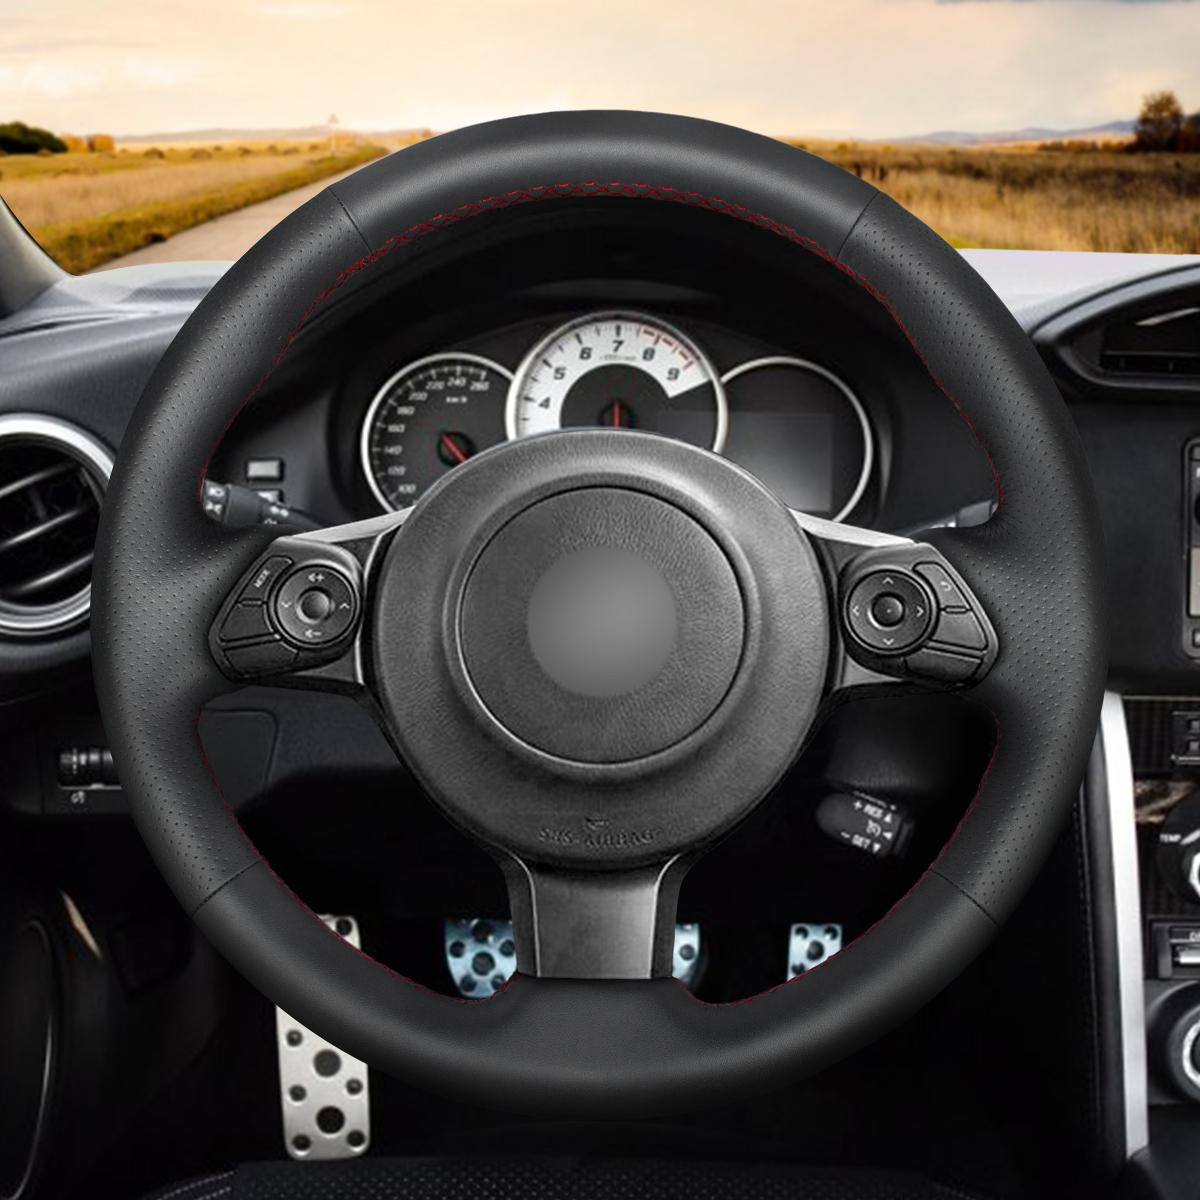 hight resolution of mewant diy black artificial leather steering wheel cover for toyota 86 2016 2017 2018 2019 subaru brz 2016 2017 2018 2019 superskin steering wheel cover